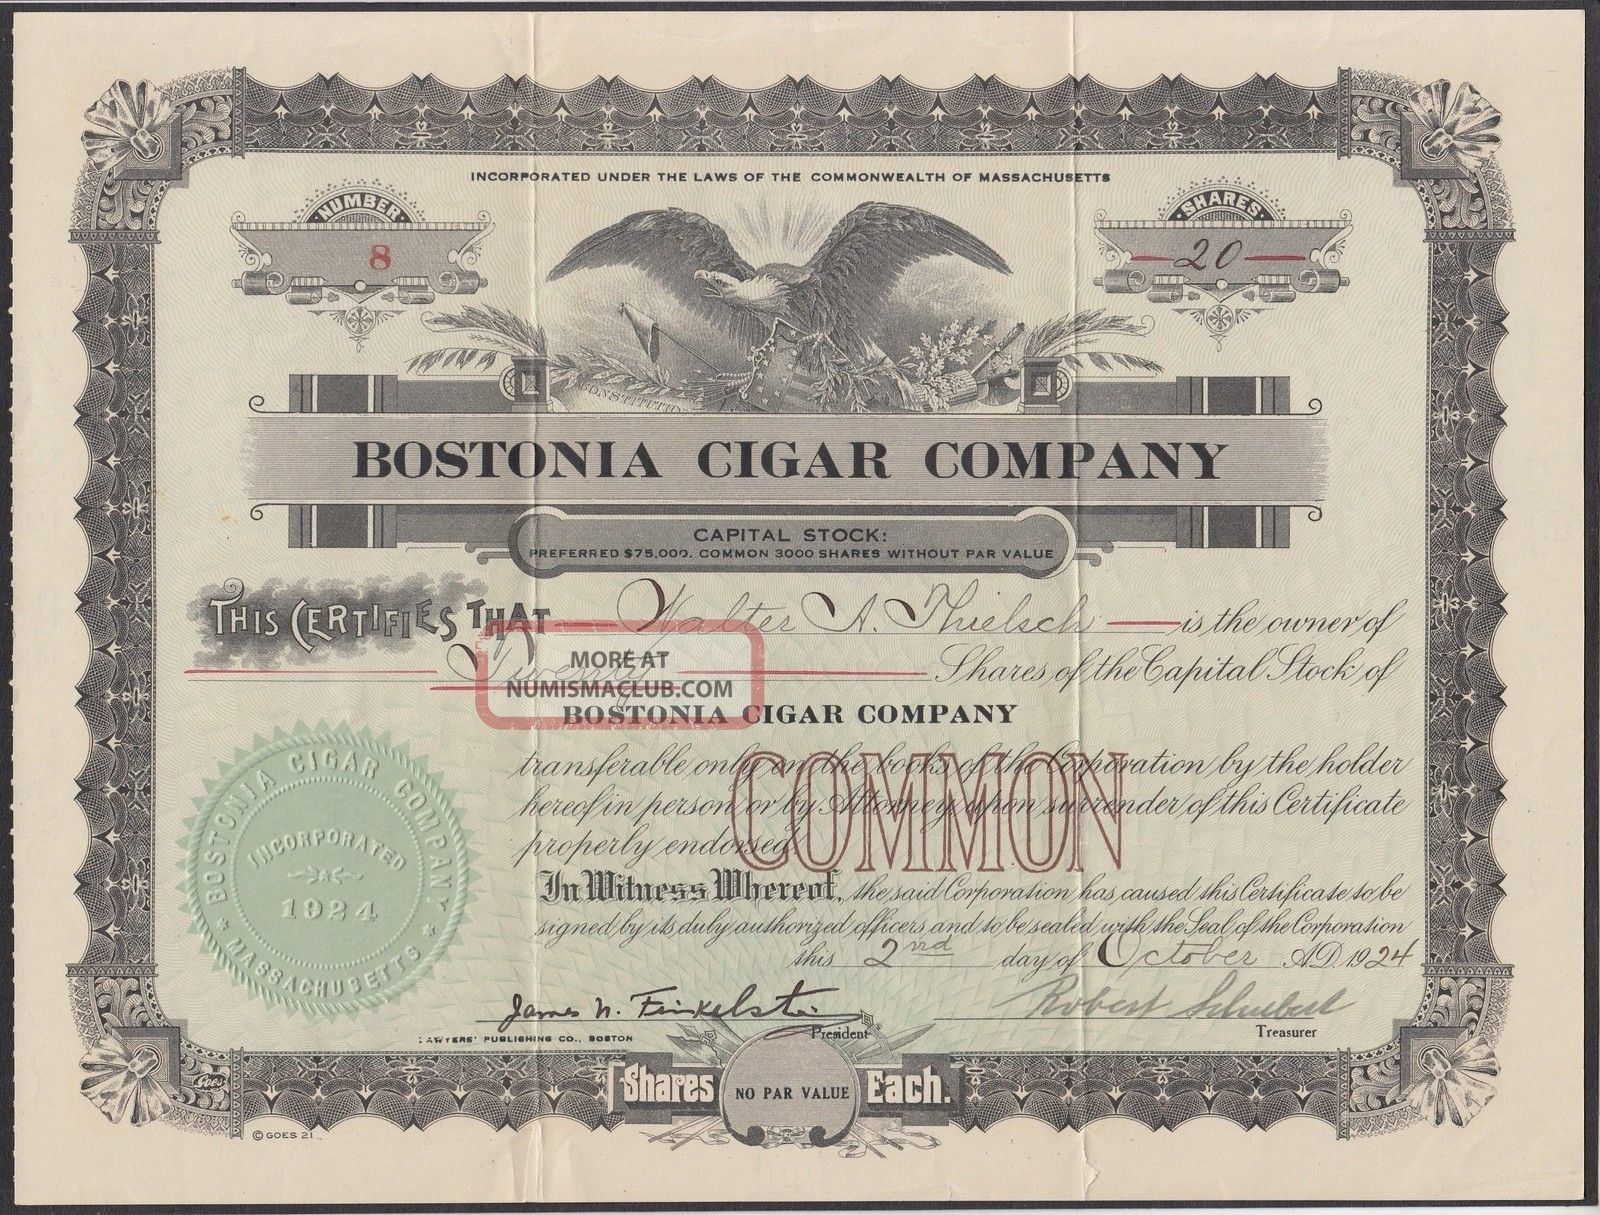 United States 1924 Ornate Tobacco Bond Certificate Bostonia Cigar Company.  R3337 World photo